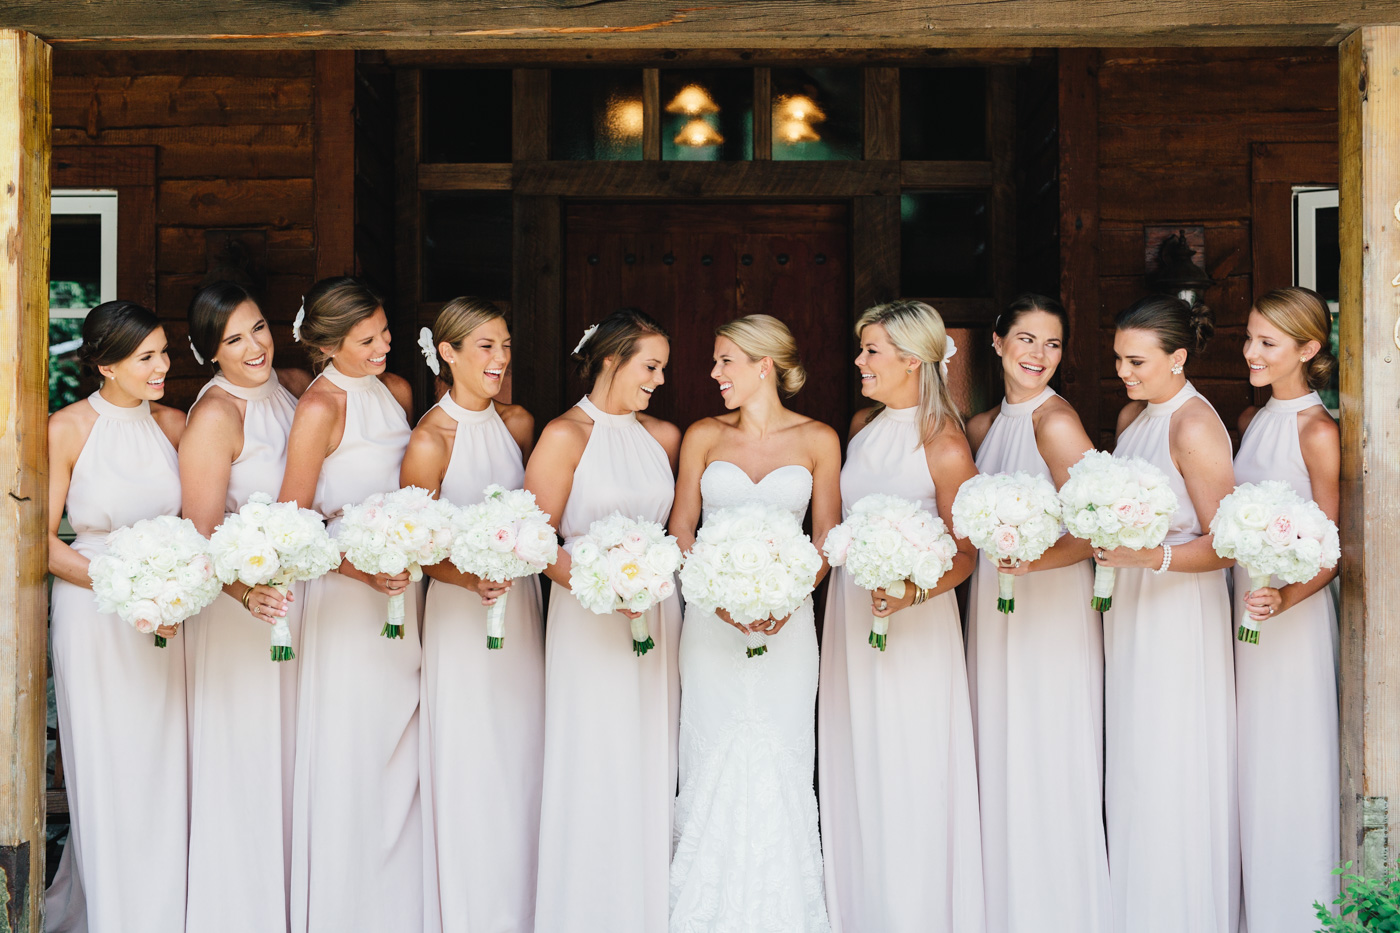 The best parts about being a bridesmaid inside weddings the best part of being a bridesmaid positives to being a bridesmaid ombrellifo Image collections